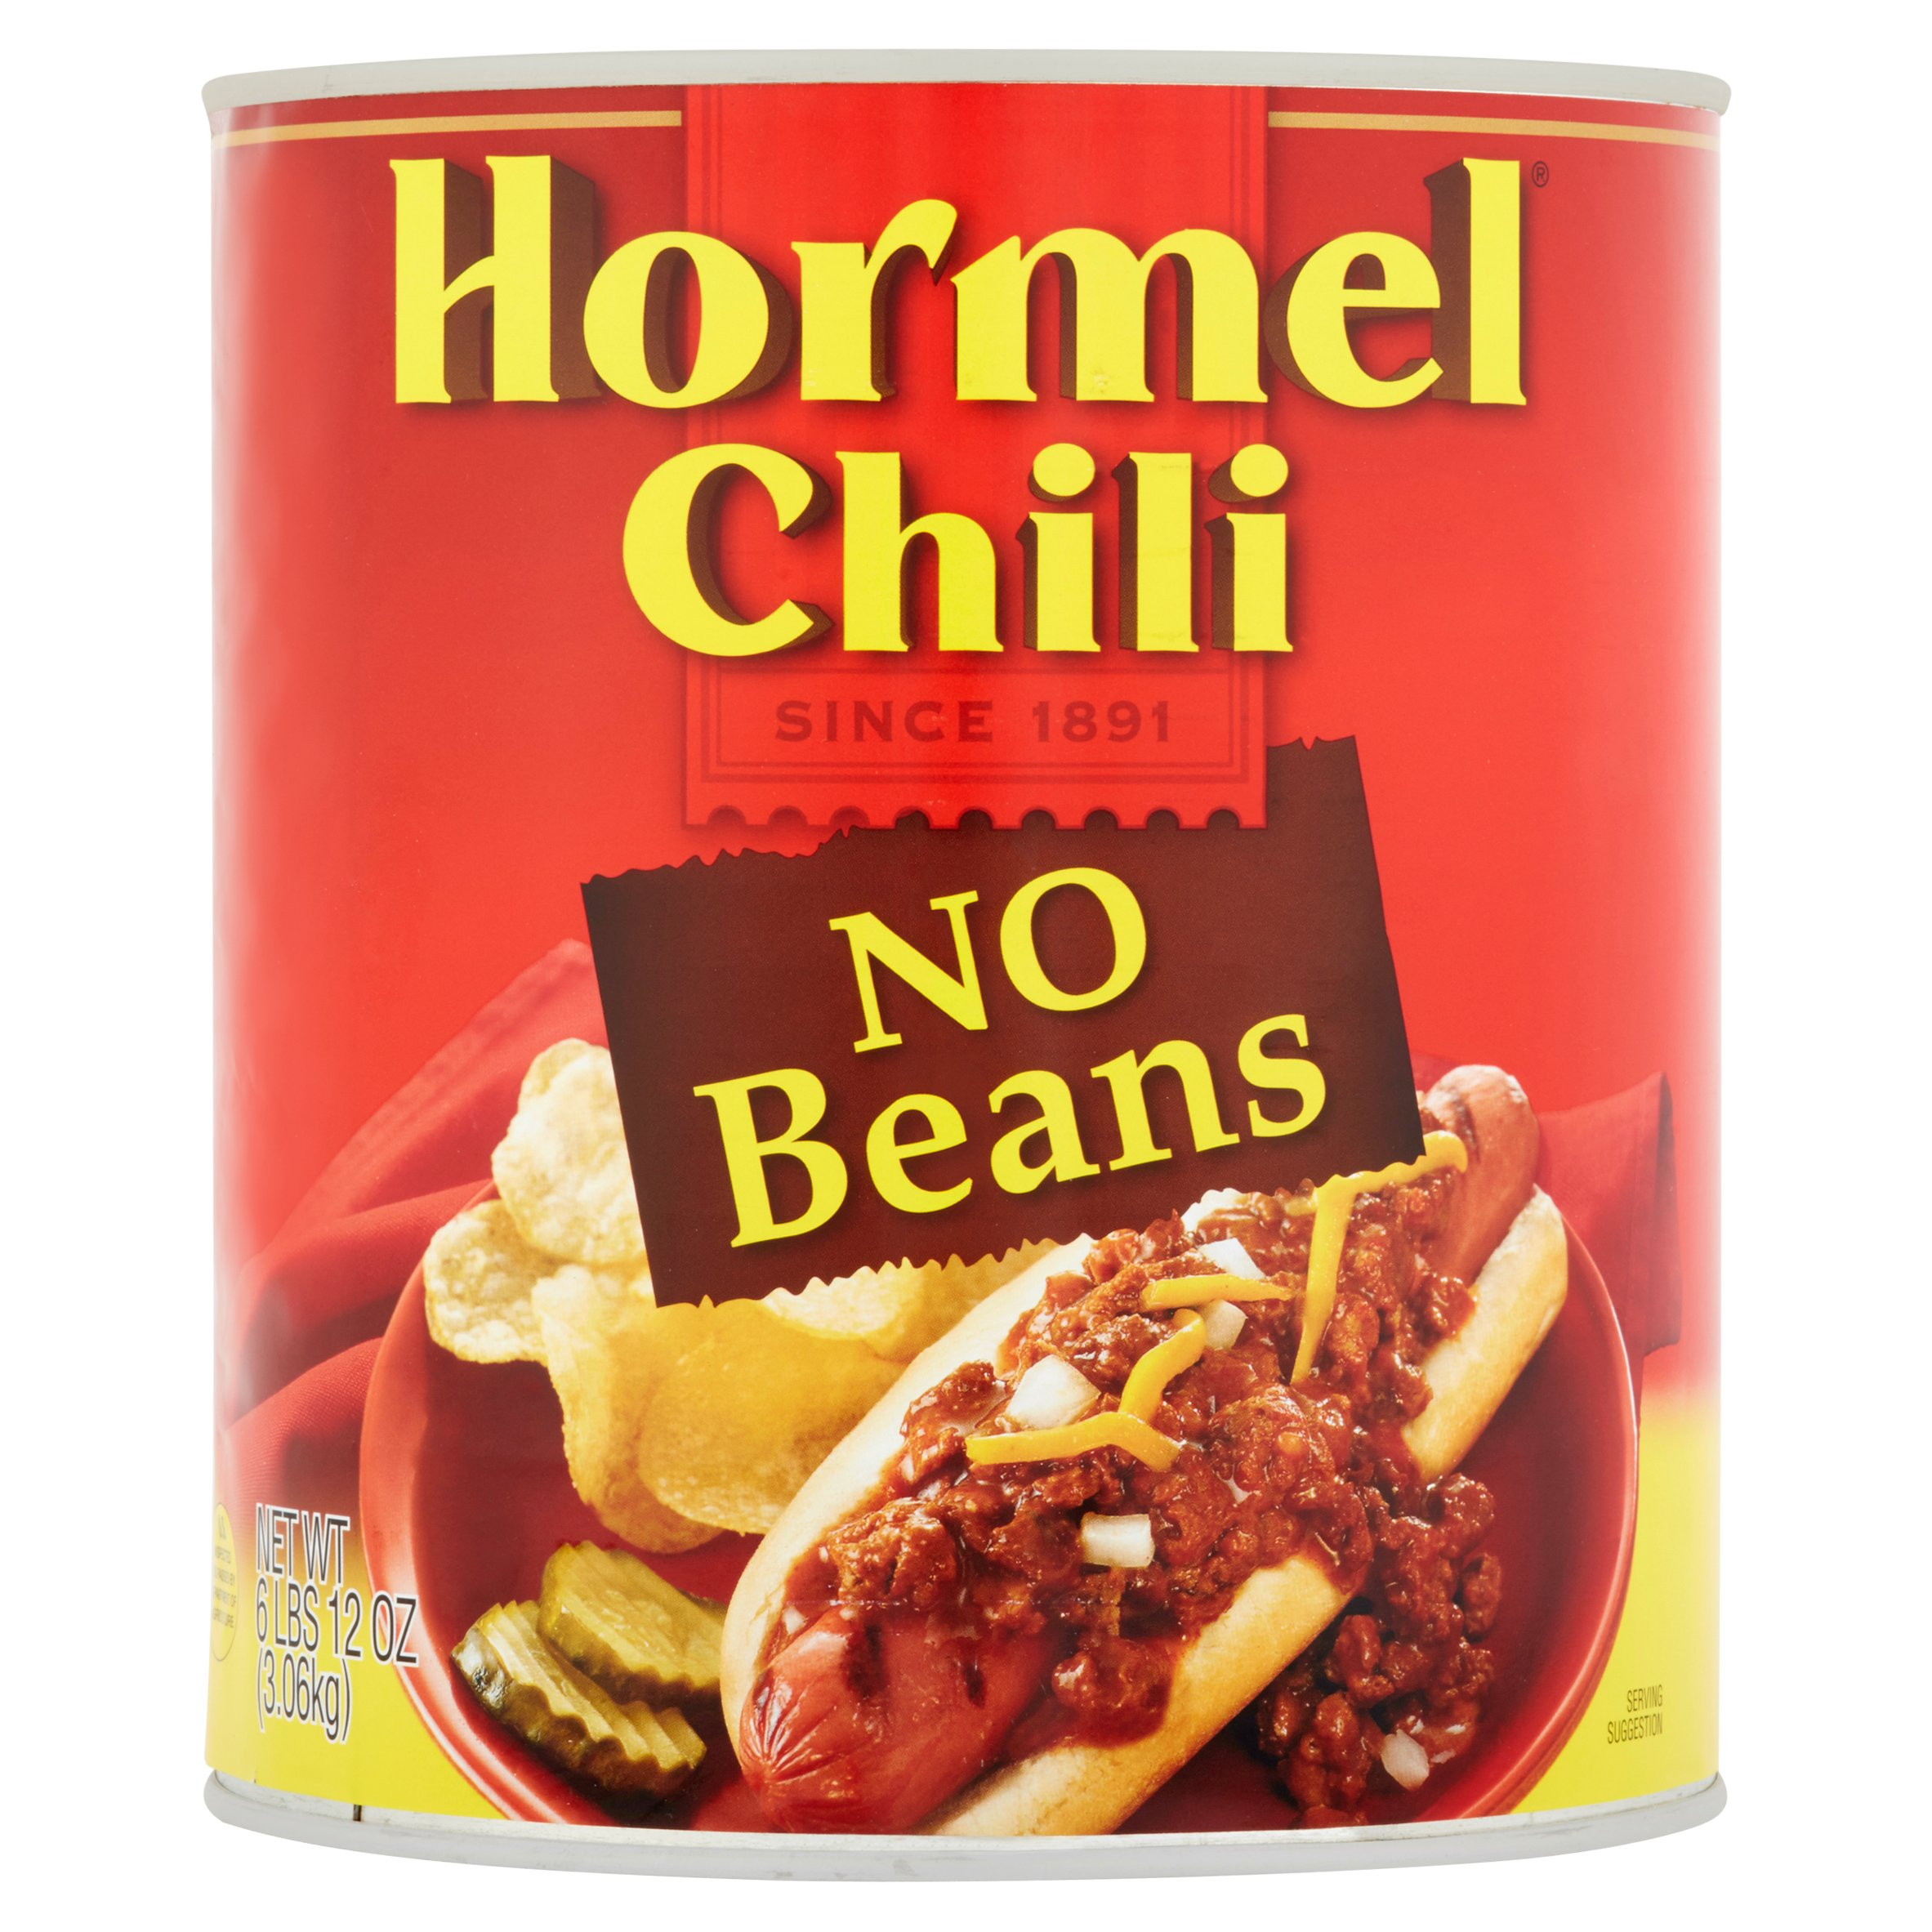 Hormel Chili No Beans, 6 lbs